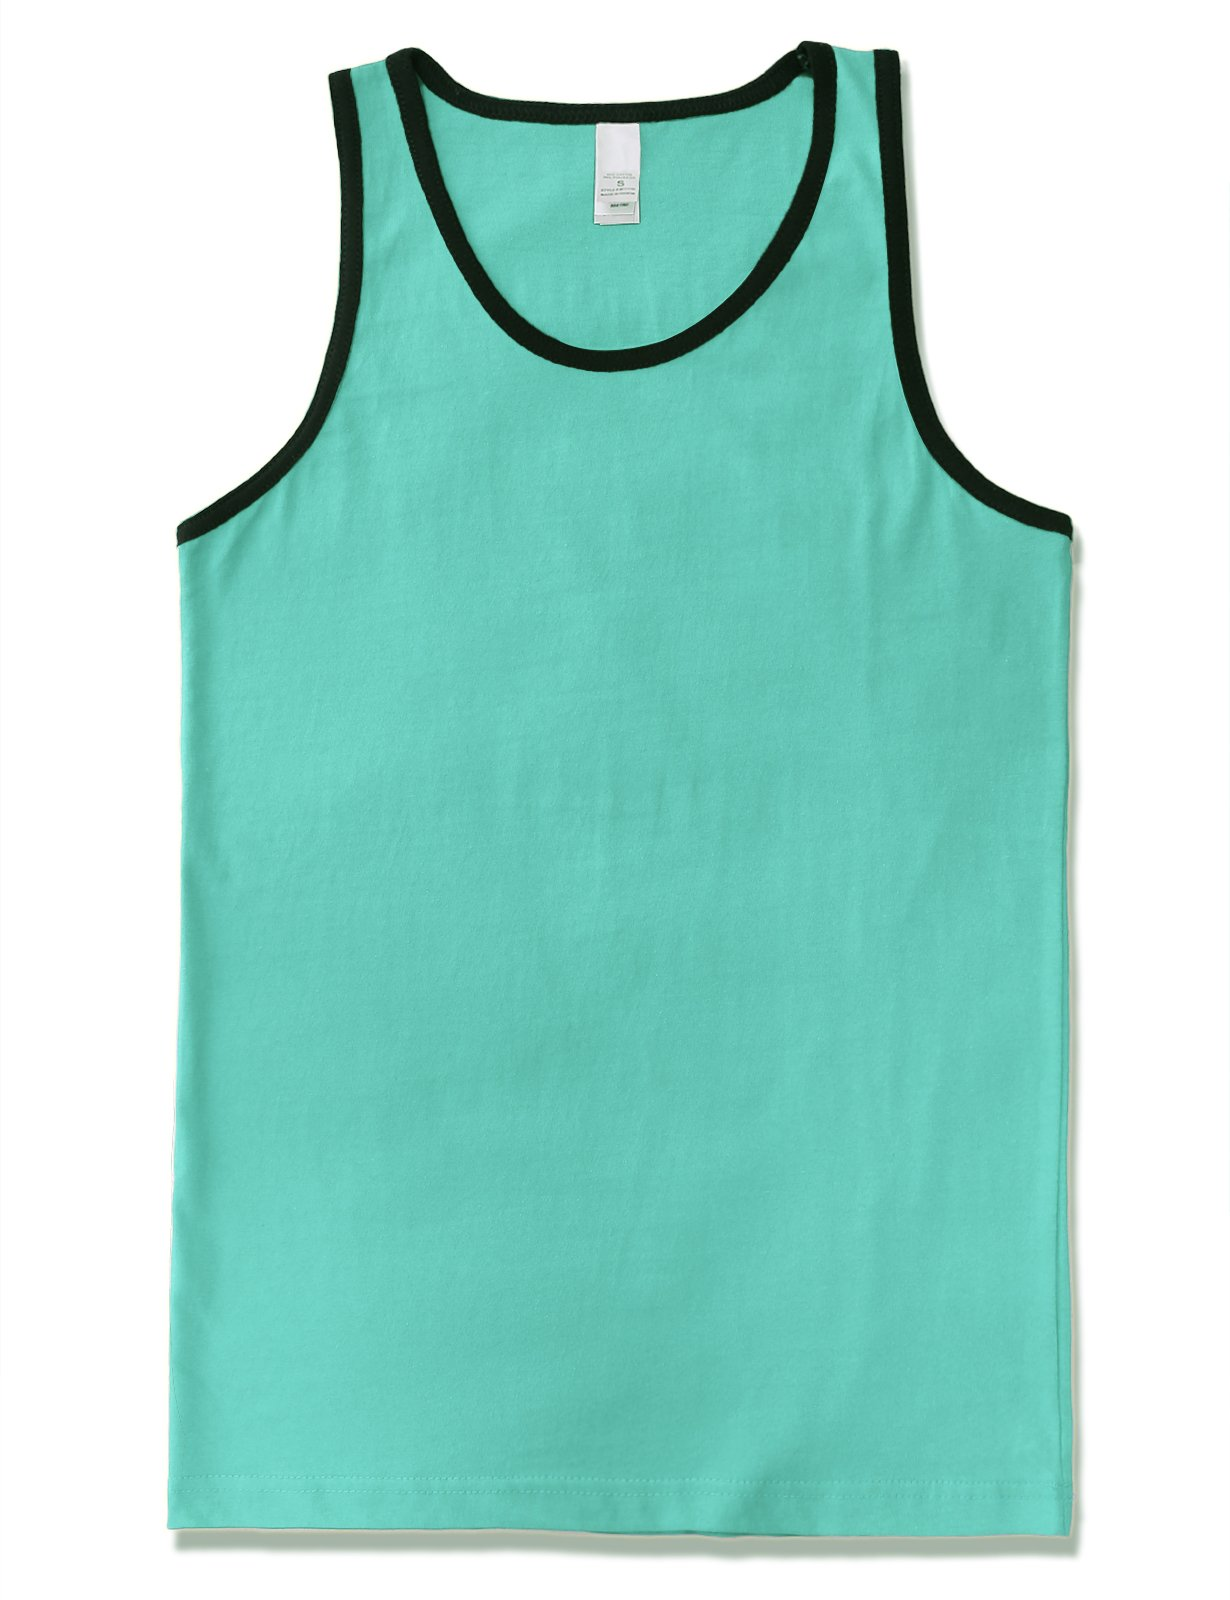 JD Apparel Men's Basic Athletic Jersey Tank Top Contrast Binding L Aqua Black TT13152 by JD Apparel